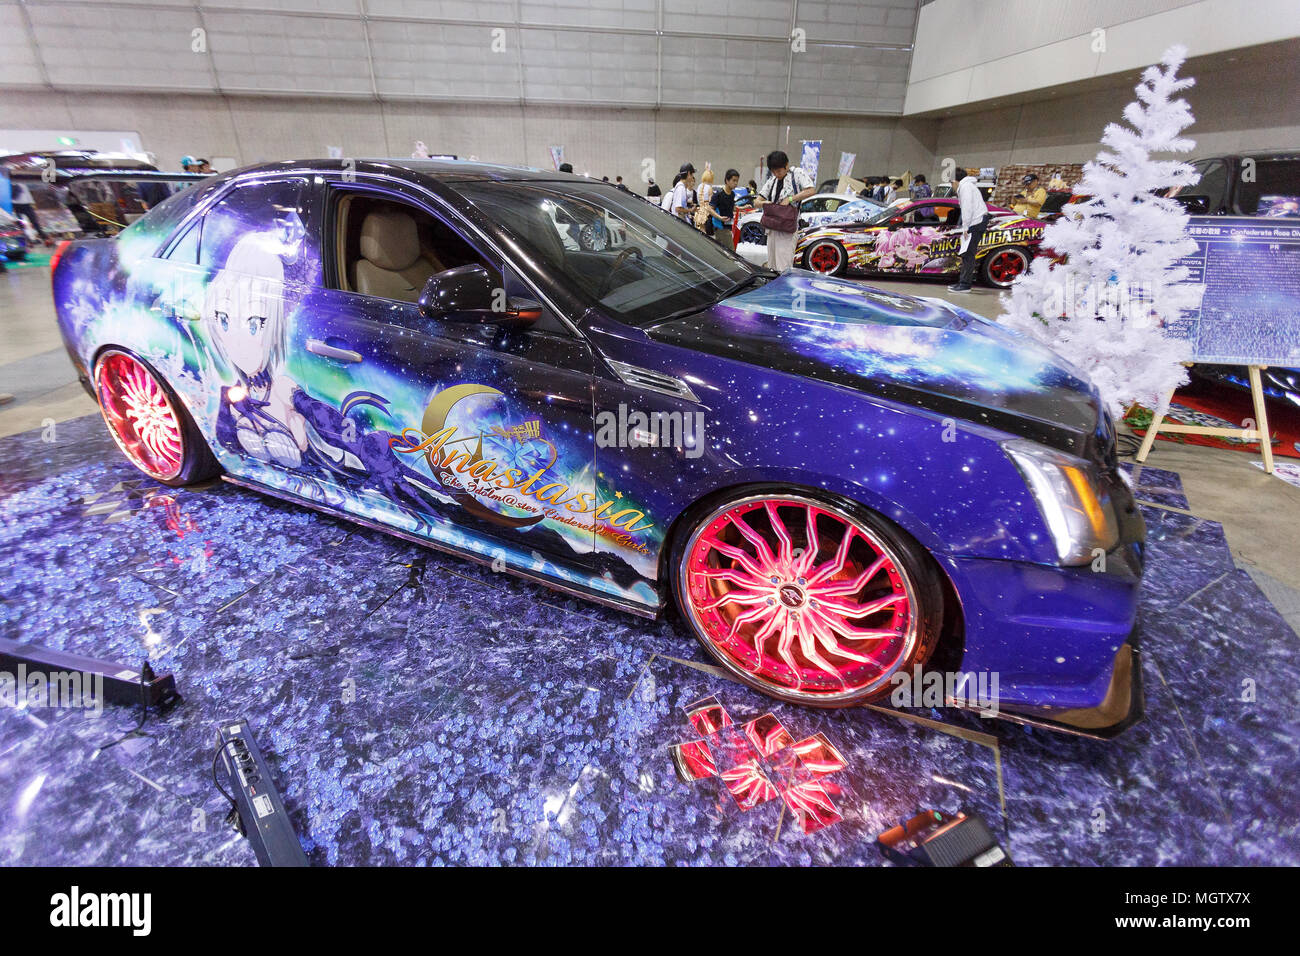 a car decorated with anime decals itasha on display at niconico